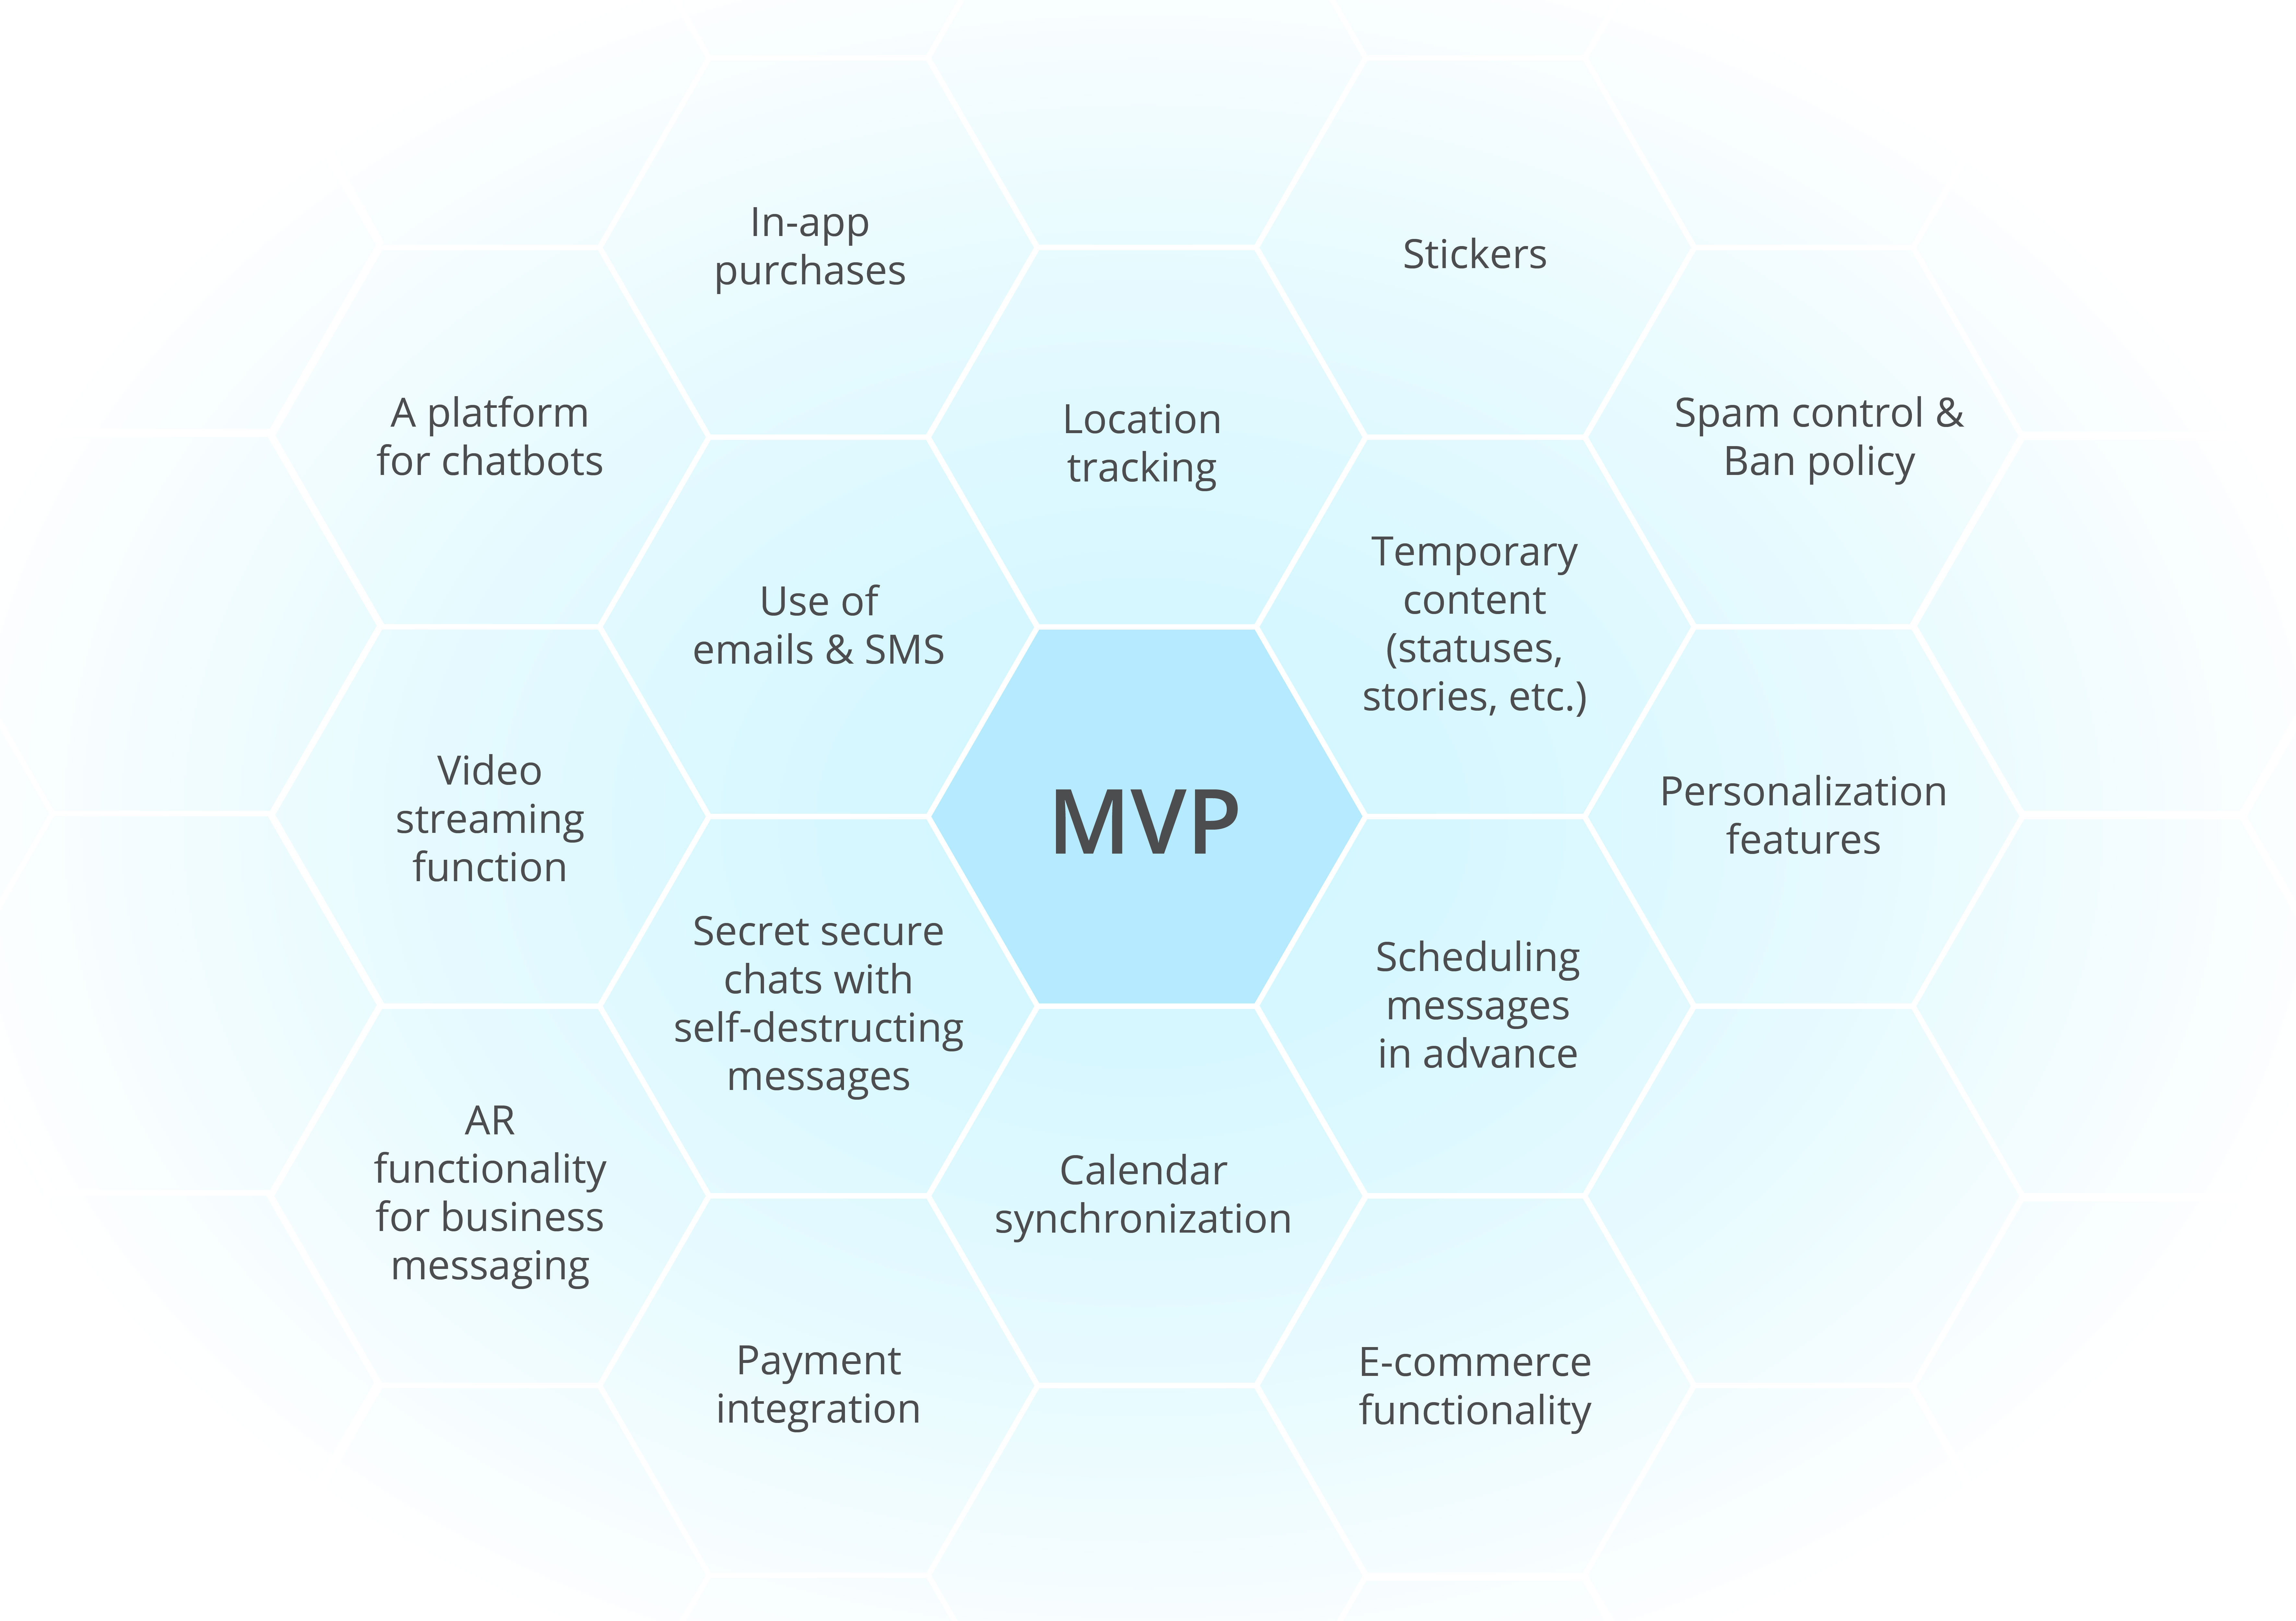 Building an MVP for Apps Focused on Messaging